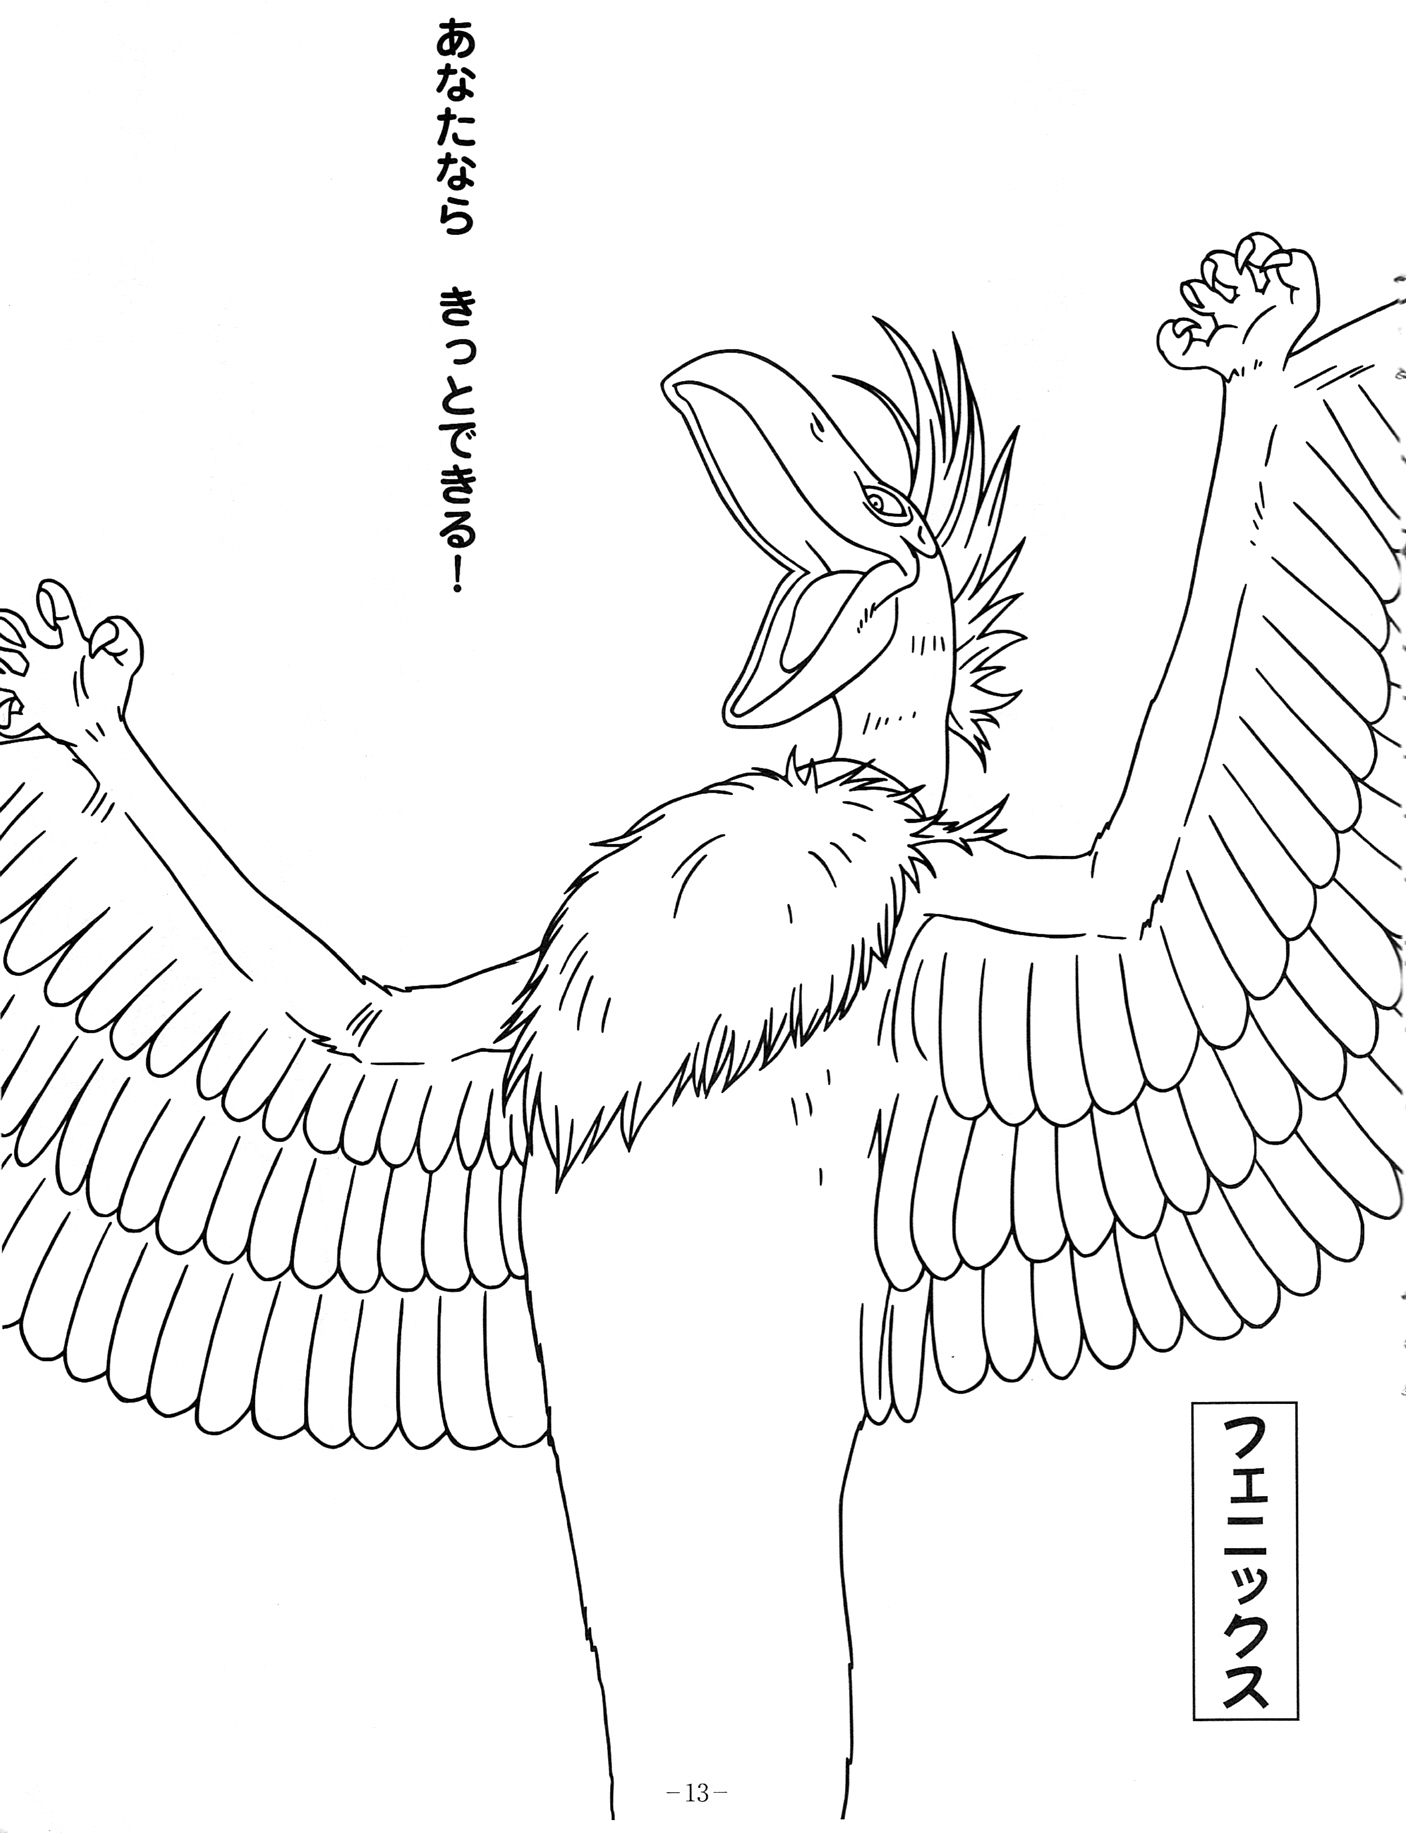 blue dragon coloring pages - photo#21